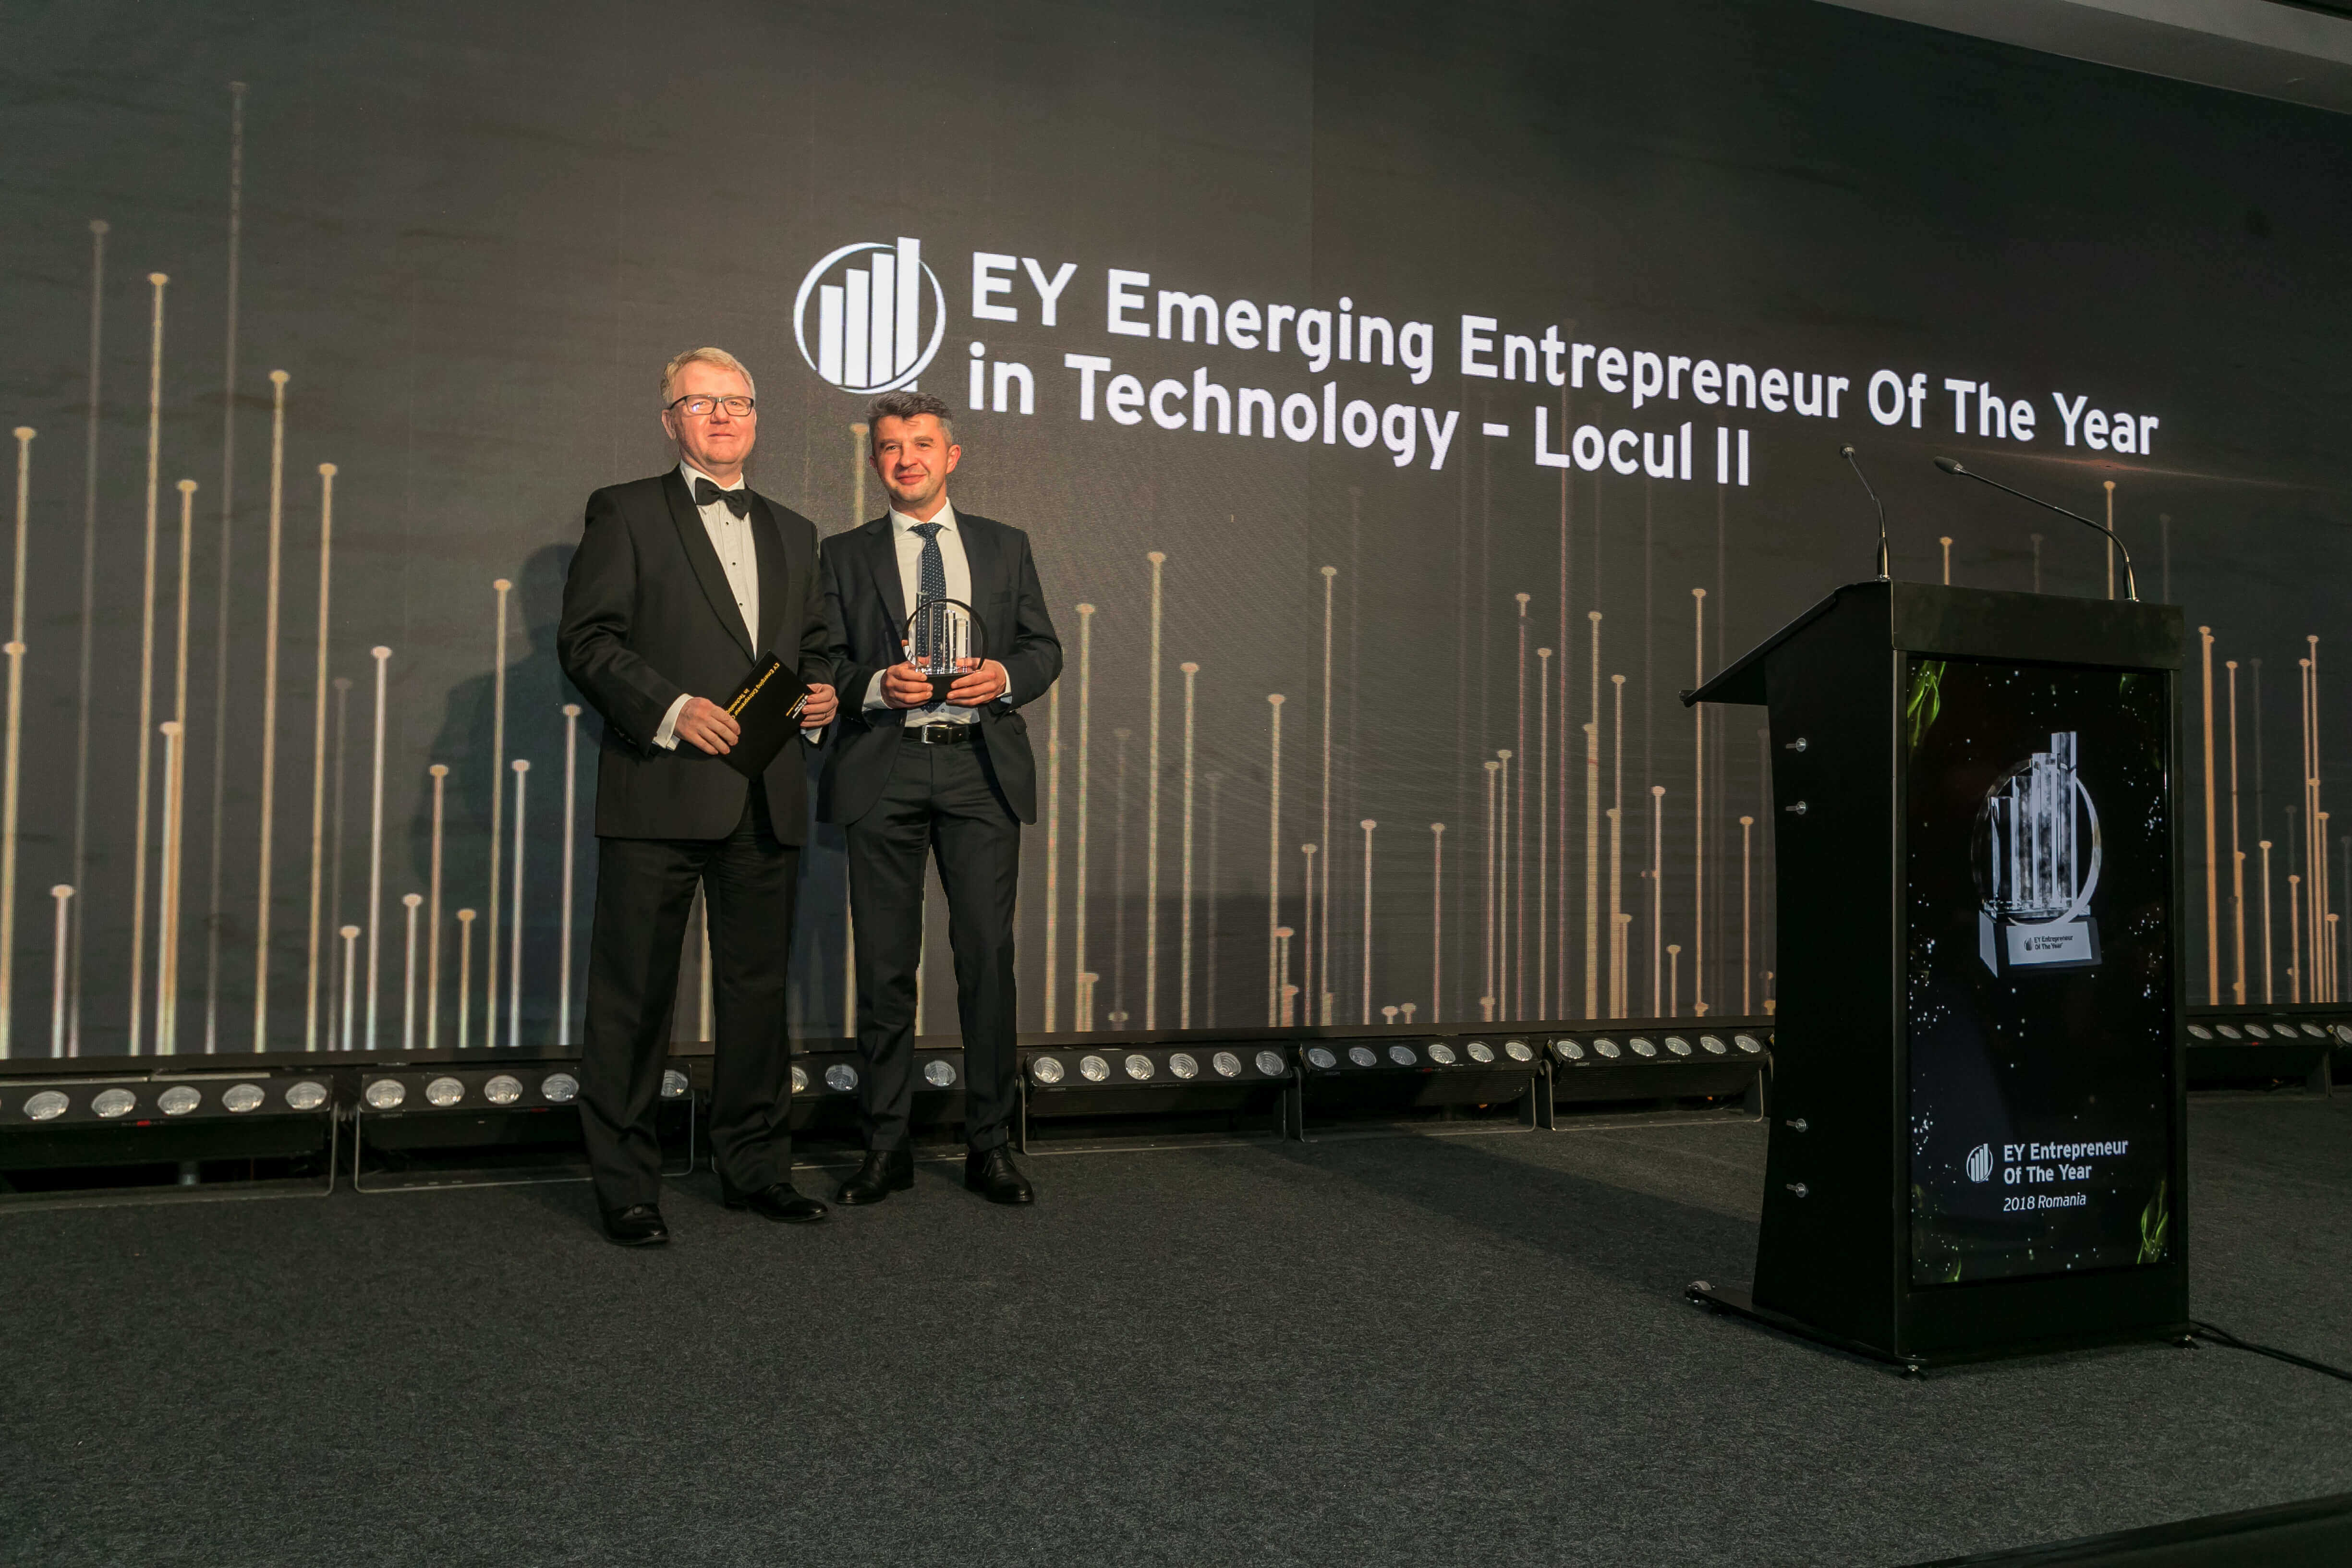 EY Entrepreneur Of The Year - Fortech Ranked 2nd Most Entrepreneurial Romanian Software Company